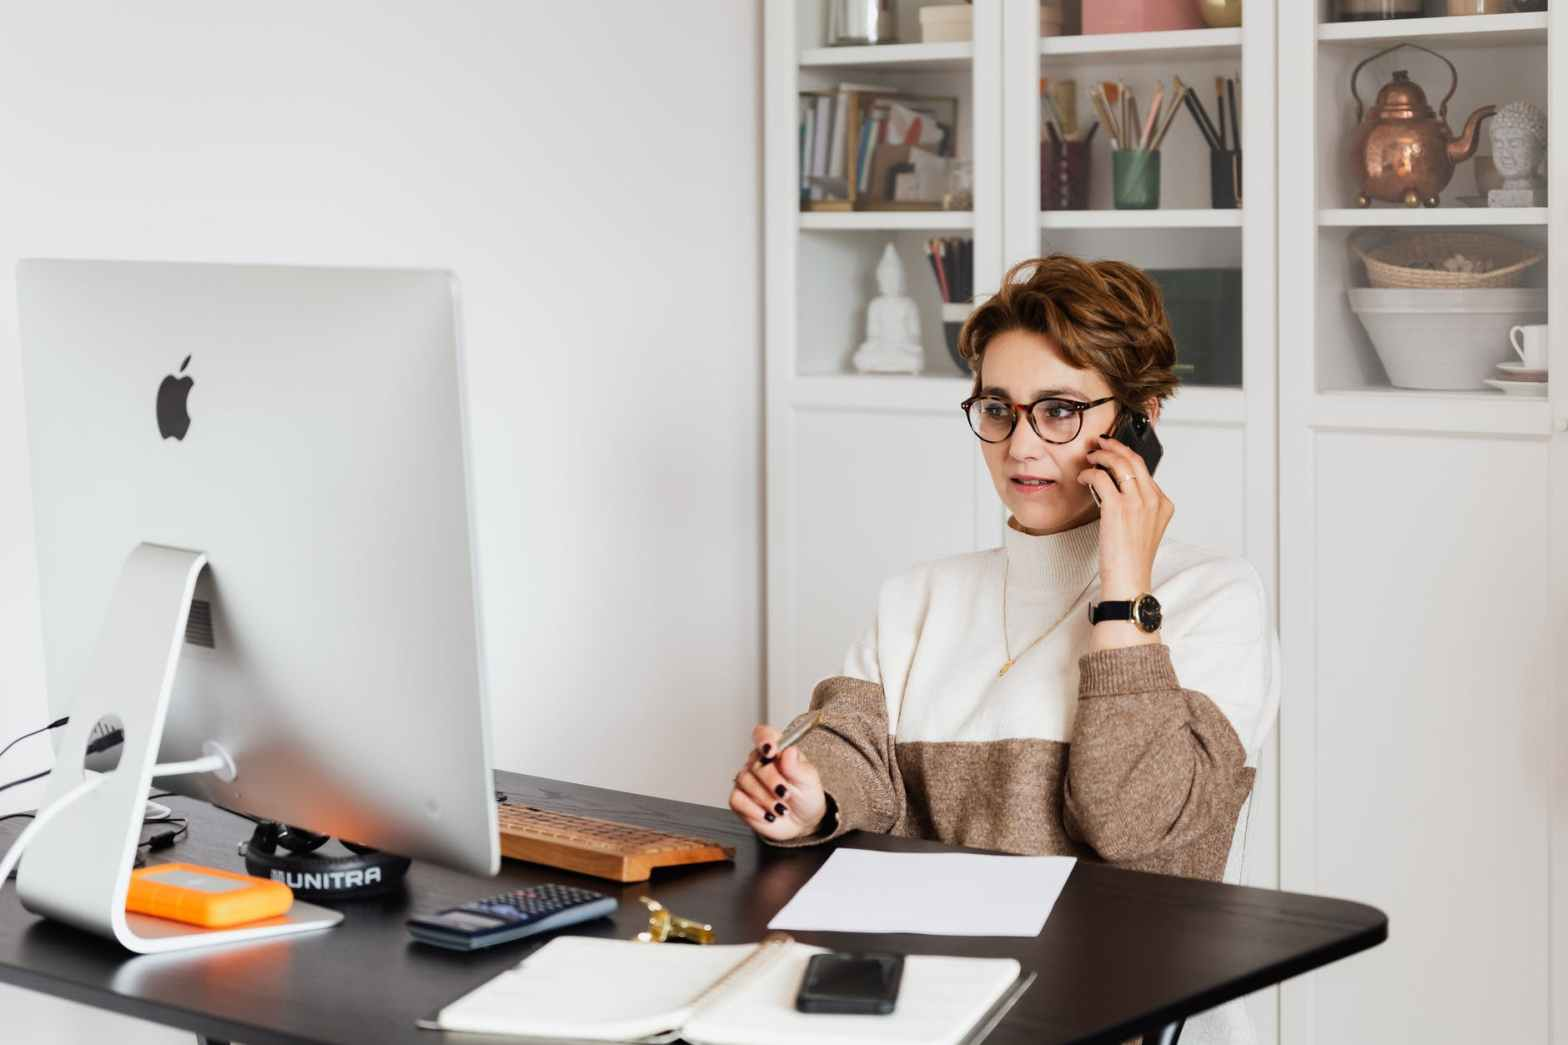 serious female executive communicating on mobile phone in cozy office